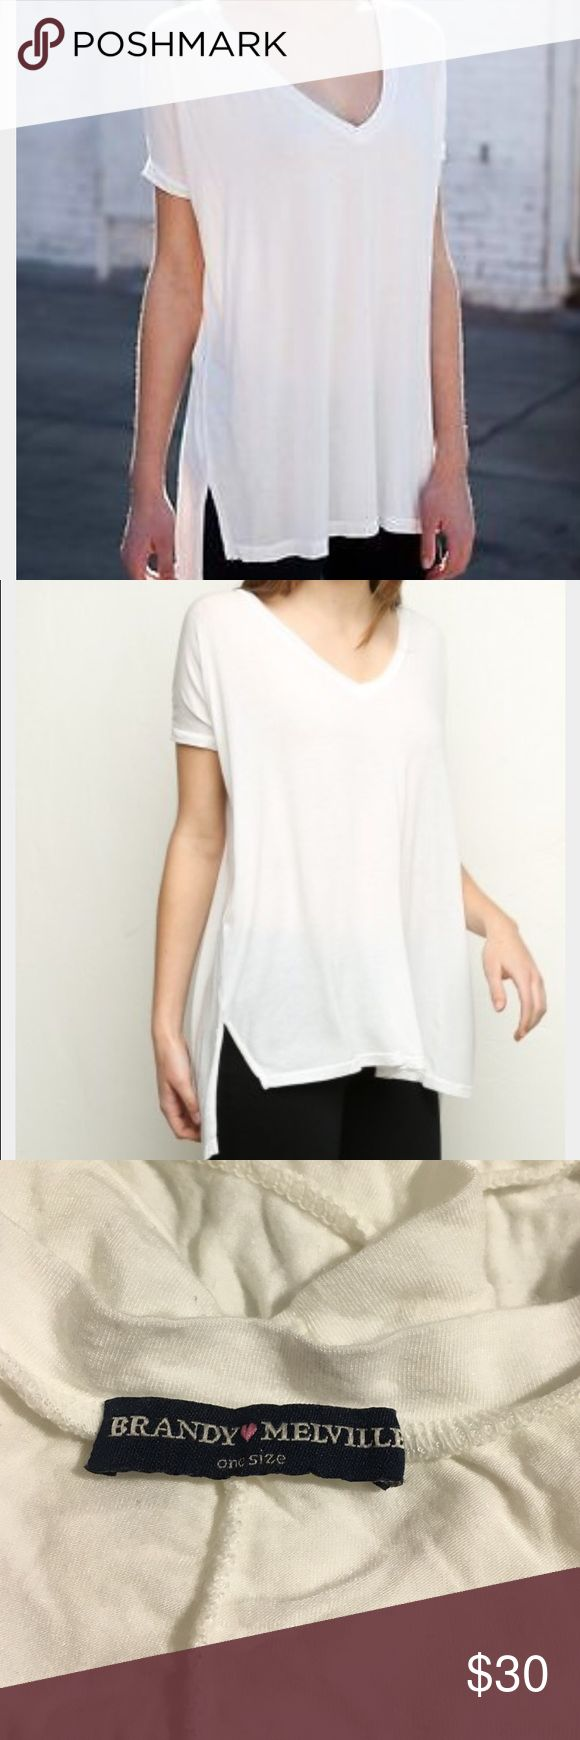 Brandy Melville Milan Top From brandy Melville. The Milan v neck top in all white worn once. Like brand new! Brandy Melville Tops Tees - Short Sleeve